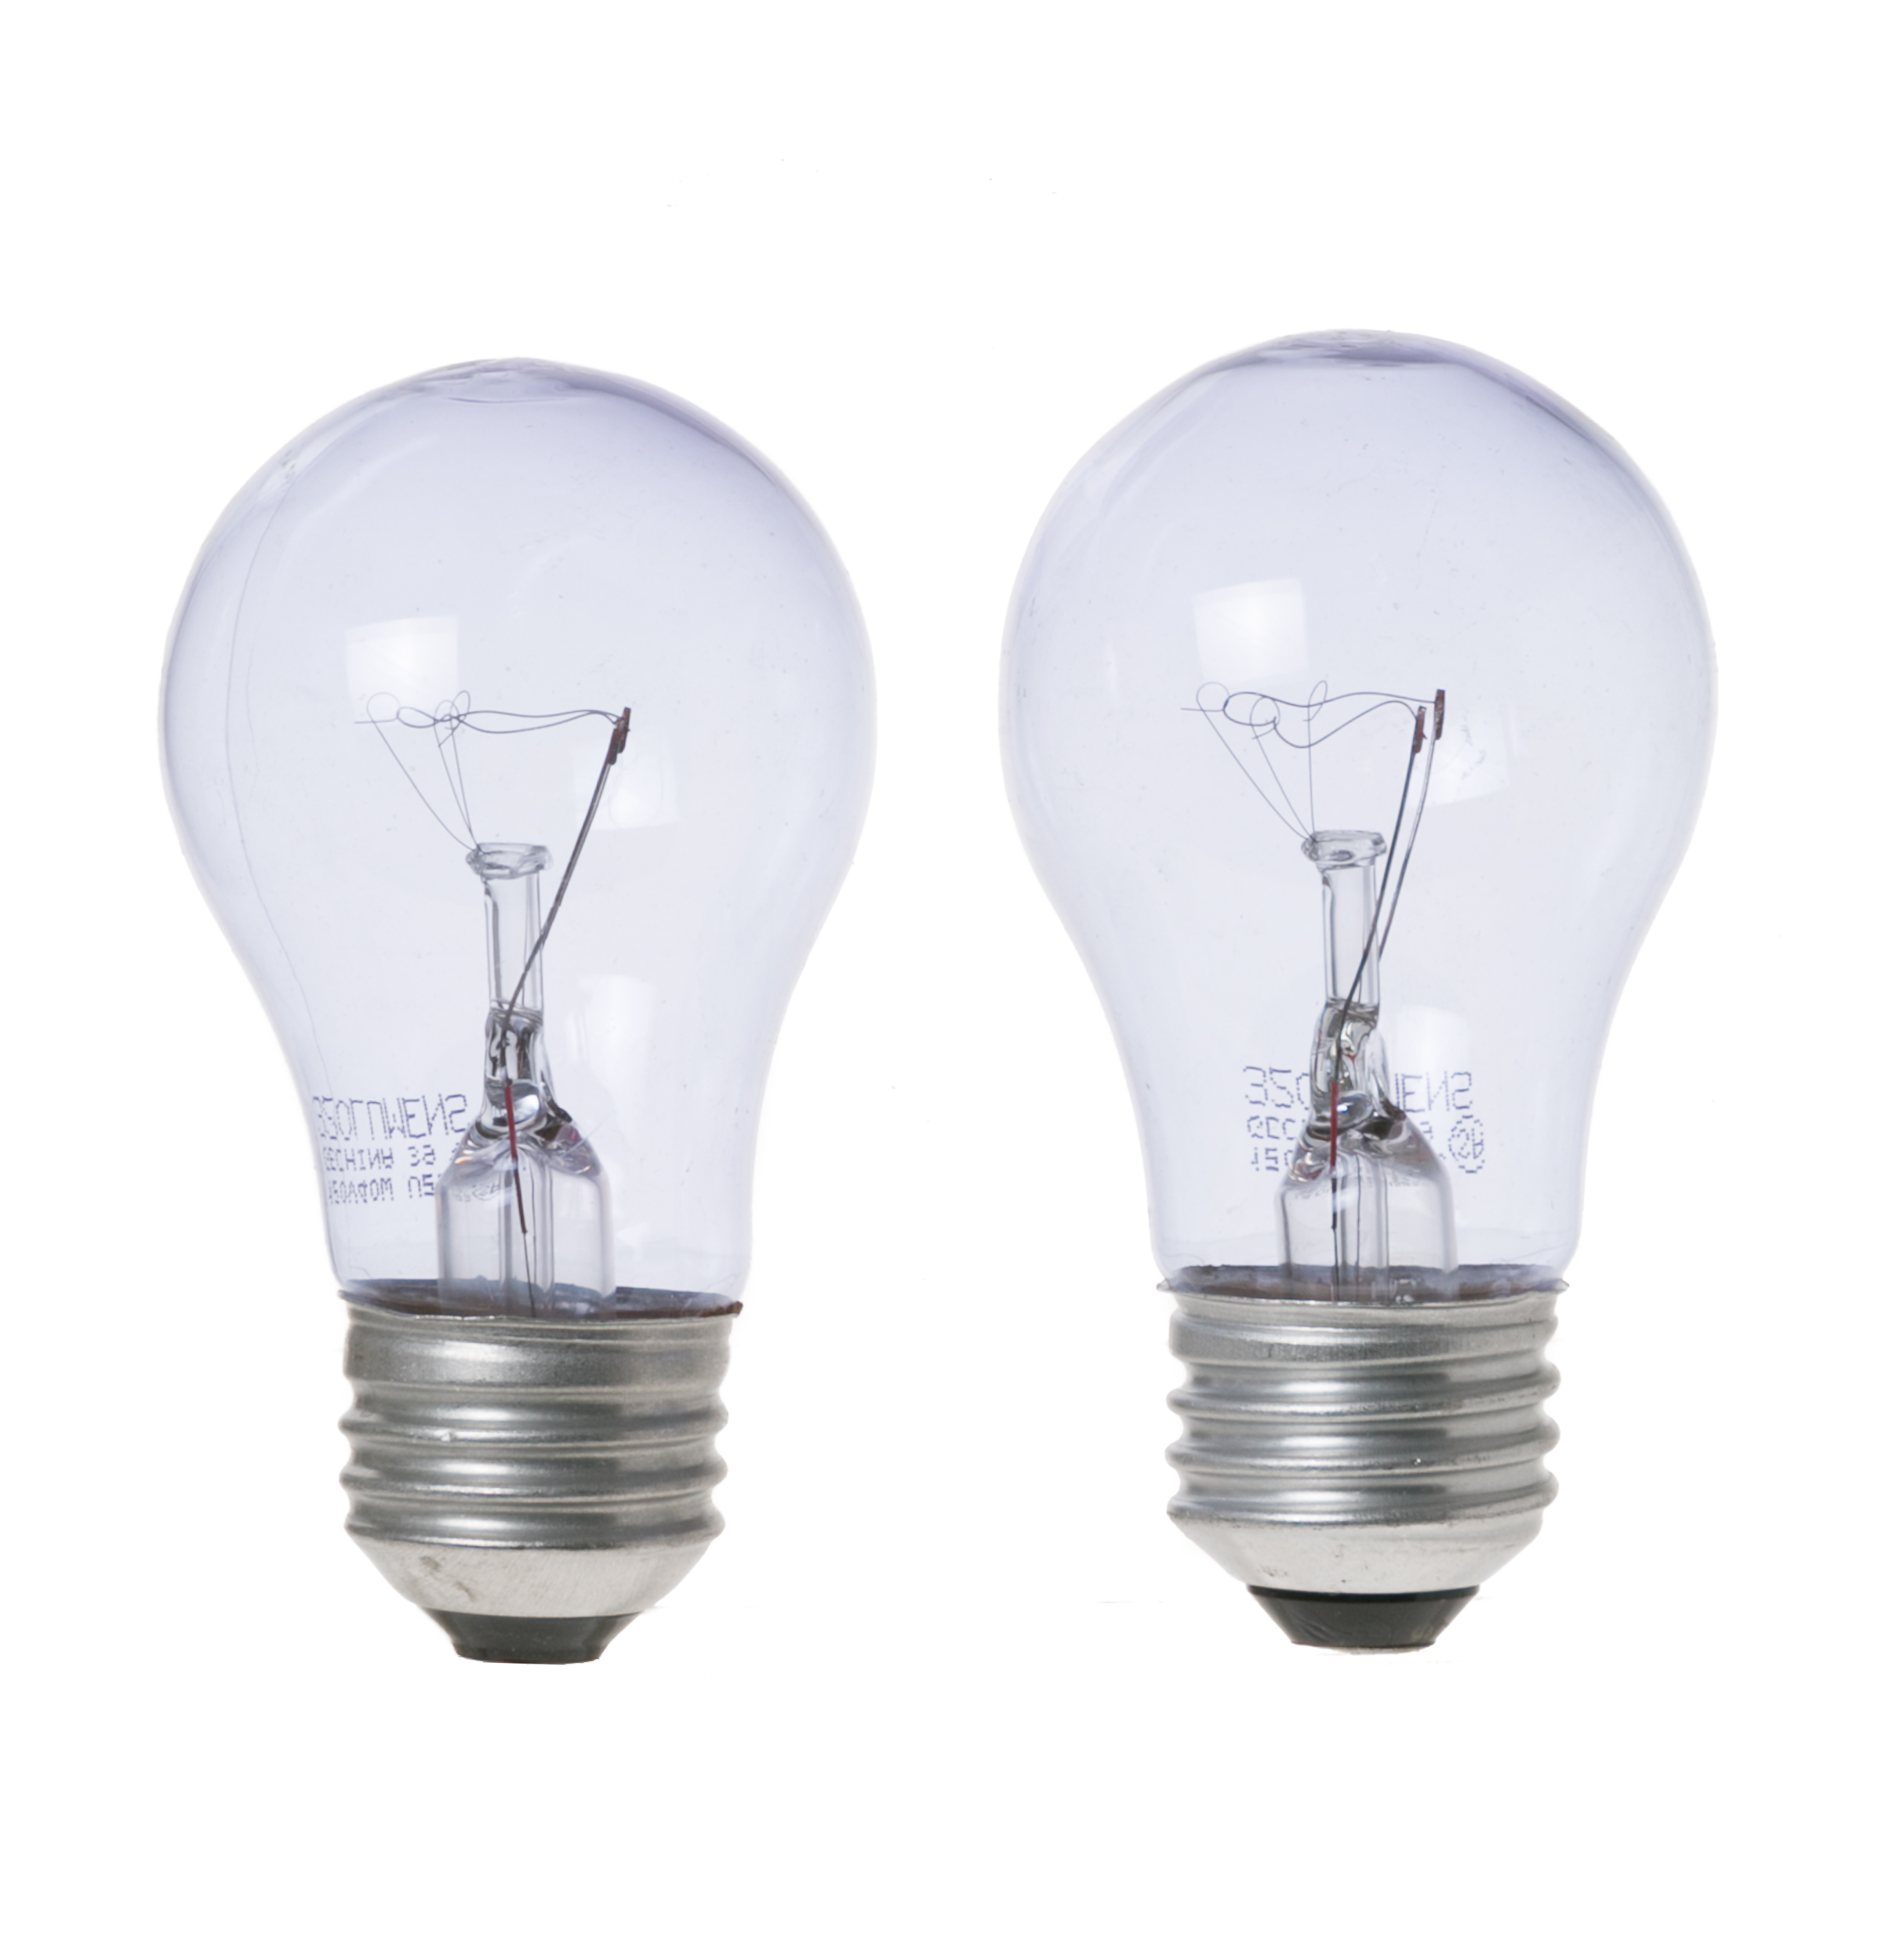 40A15RVL | 40-watt Reveal Appliance Light Bulb 2 Pack | GE Parts:Product Image ...,Lighting